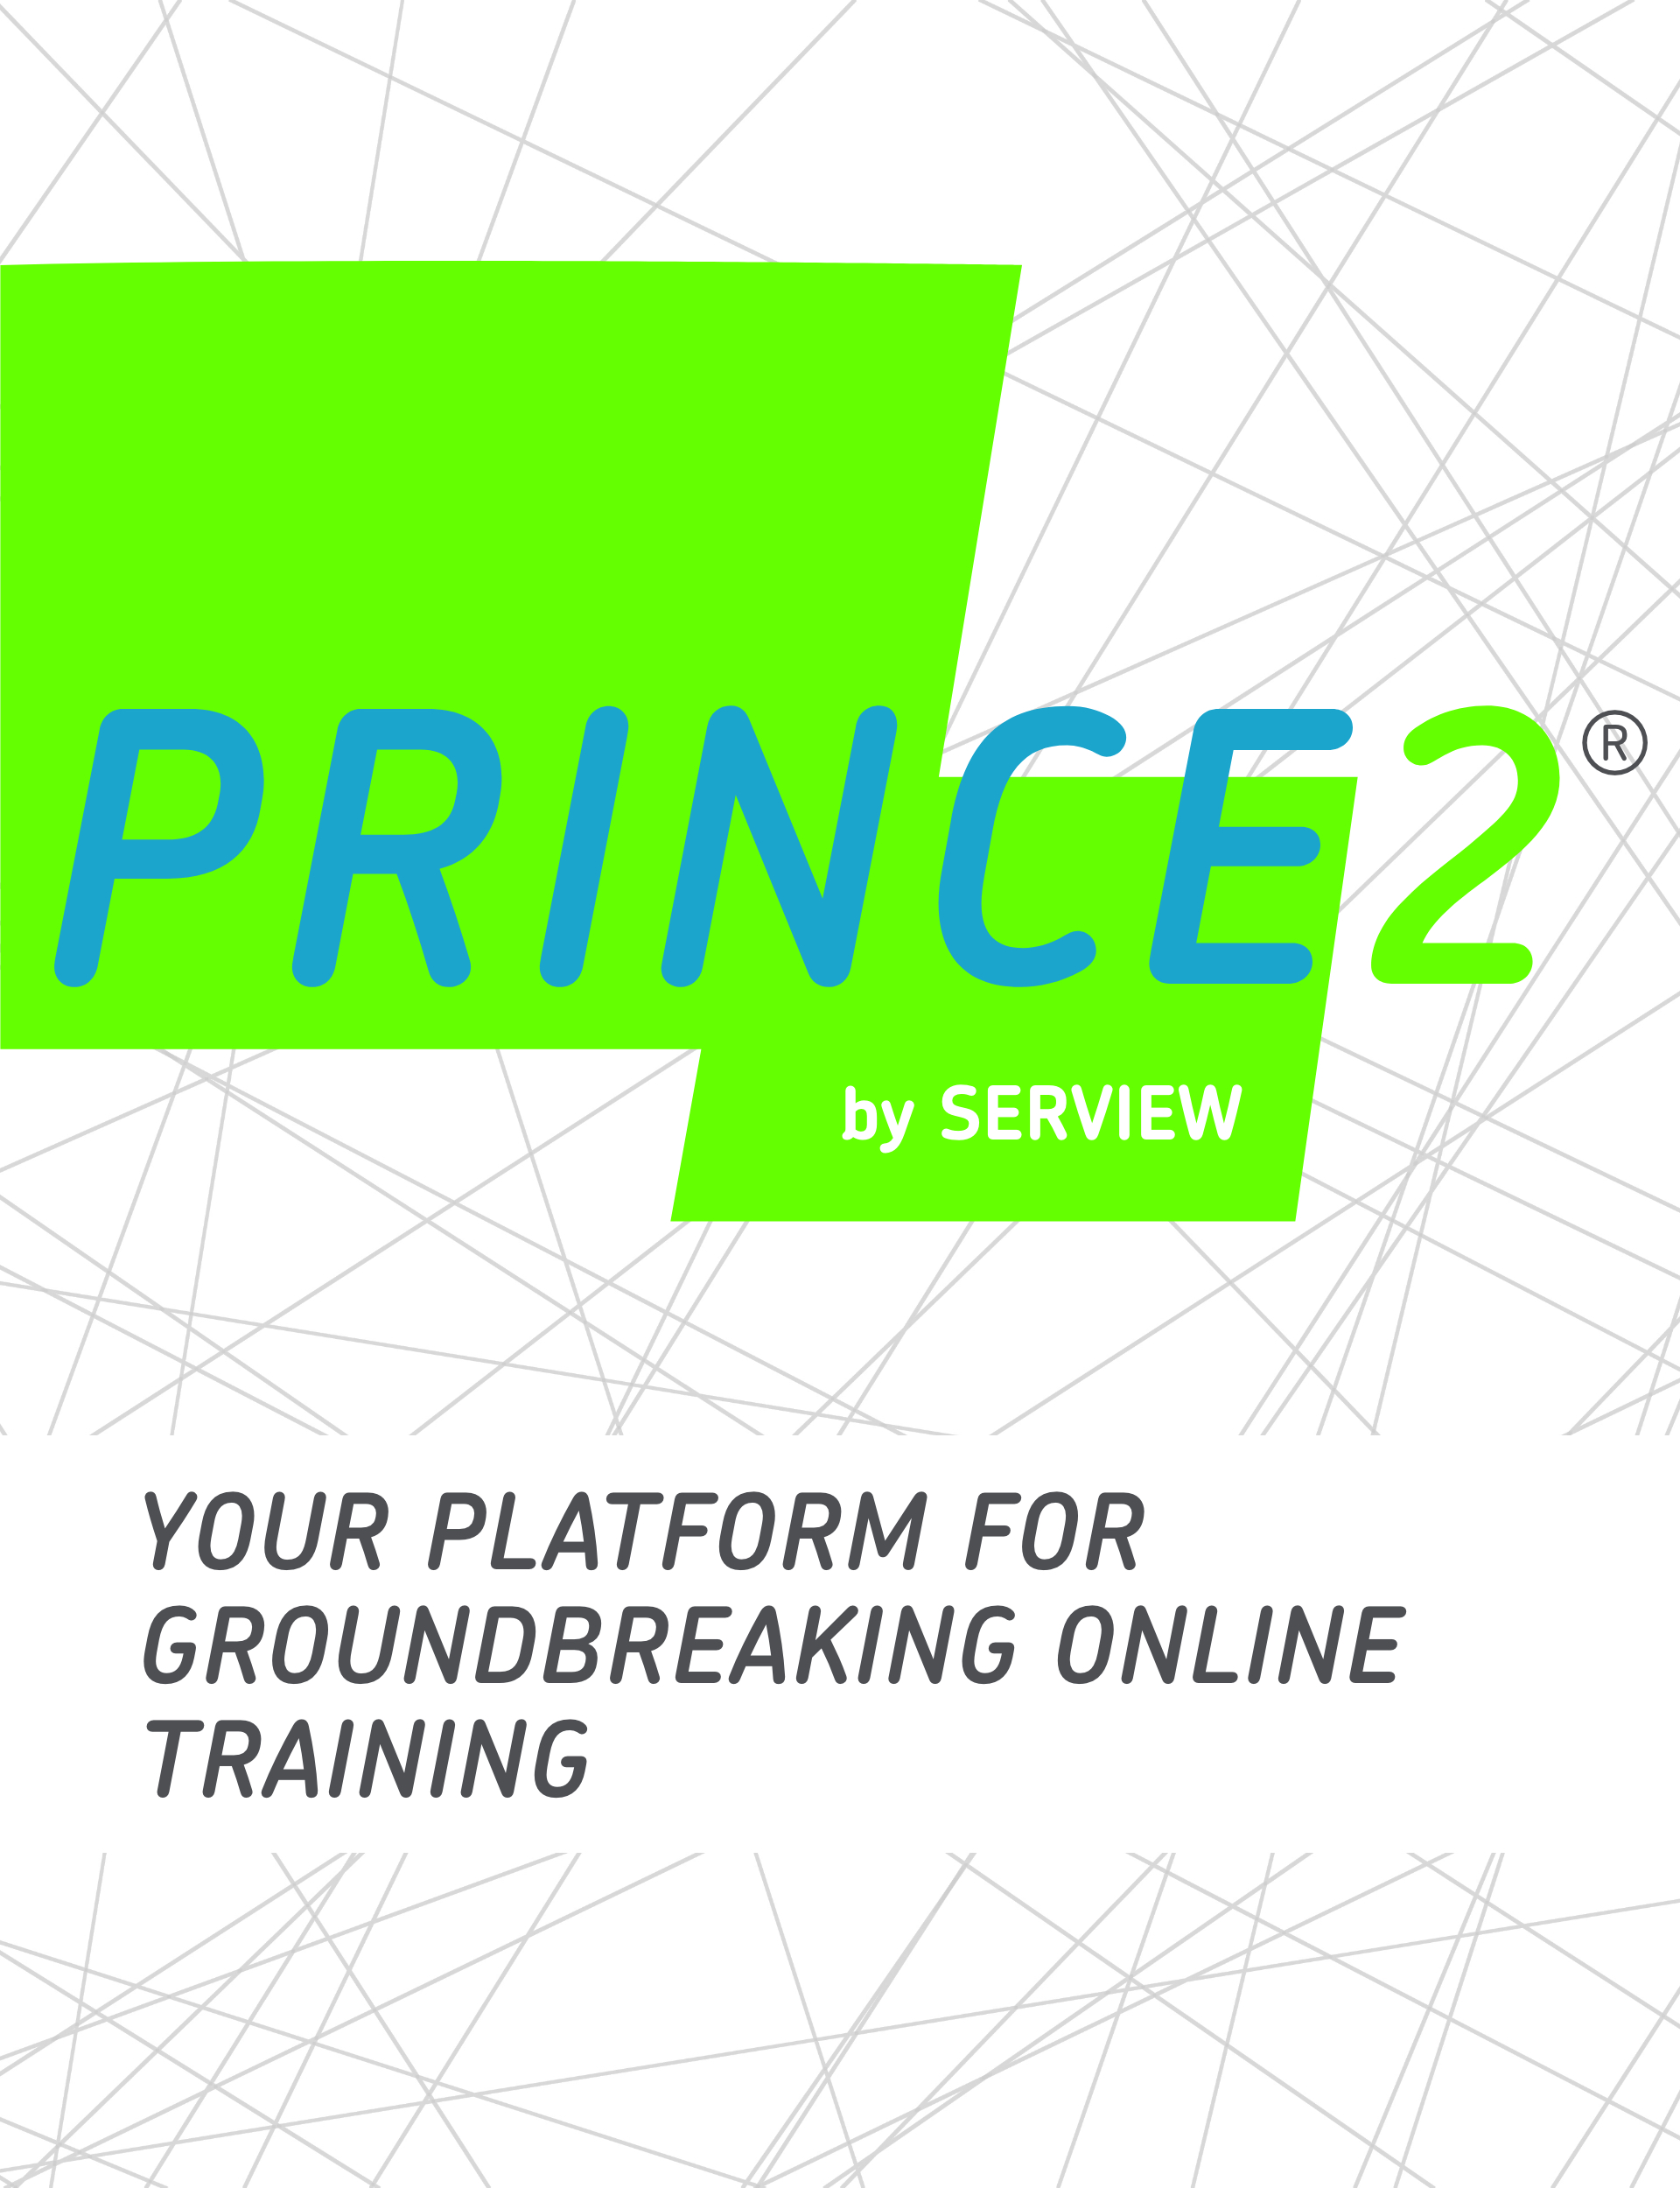 Prince 2 by Serview Groundbreaking Online Training mobile header